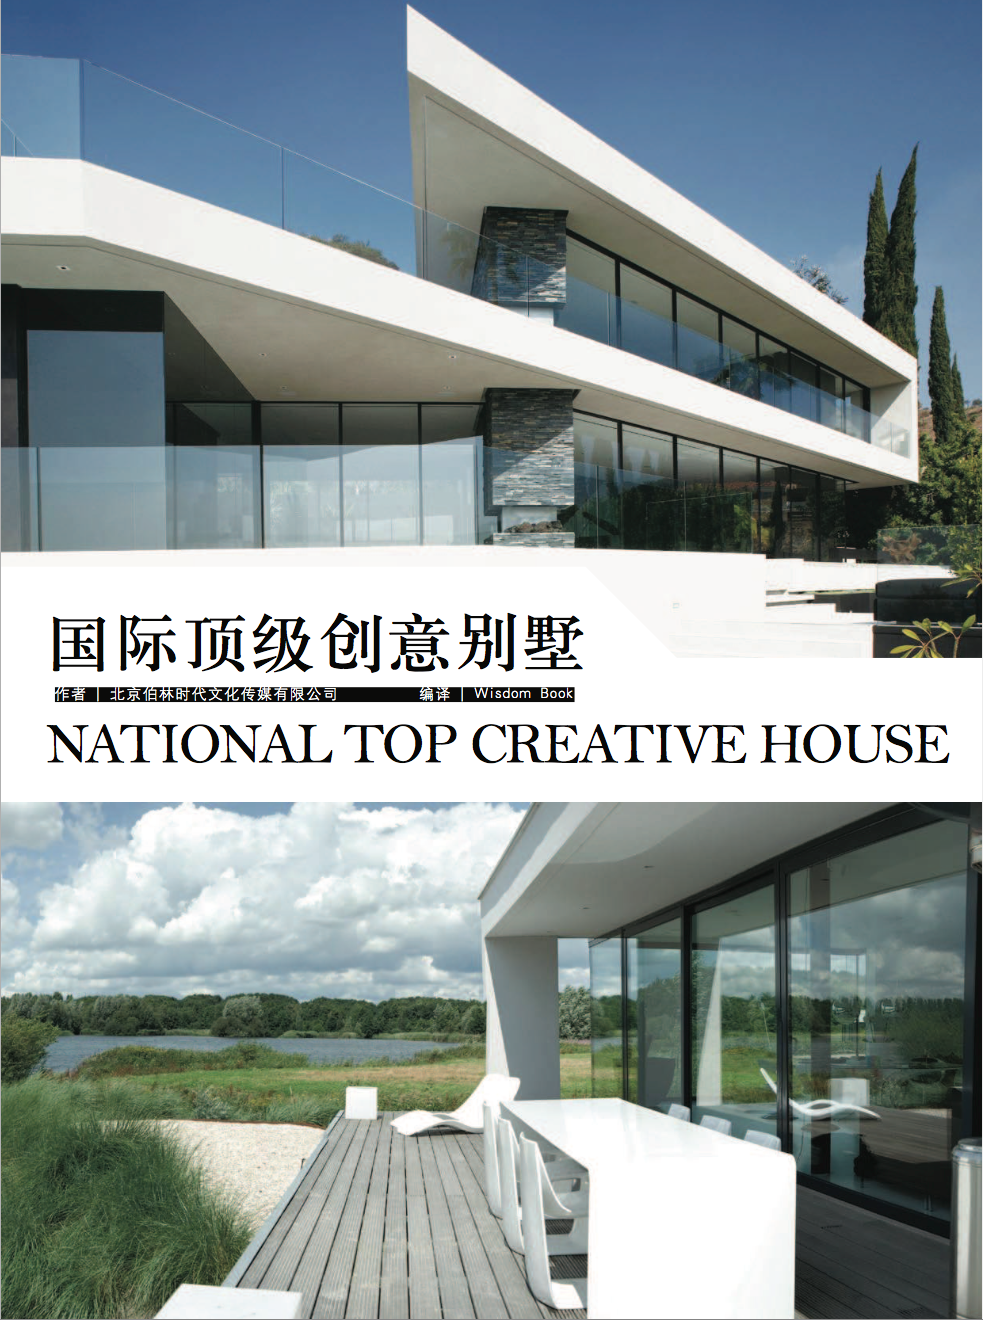 national-top-creative-house.png